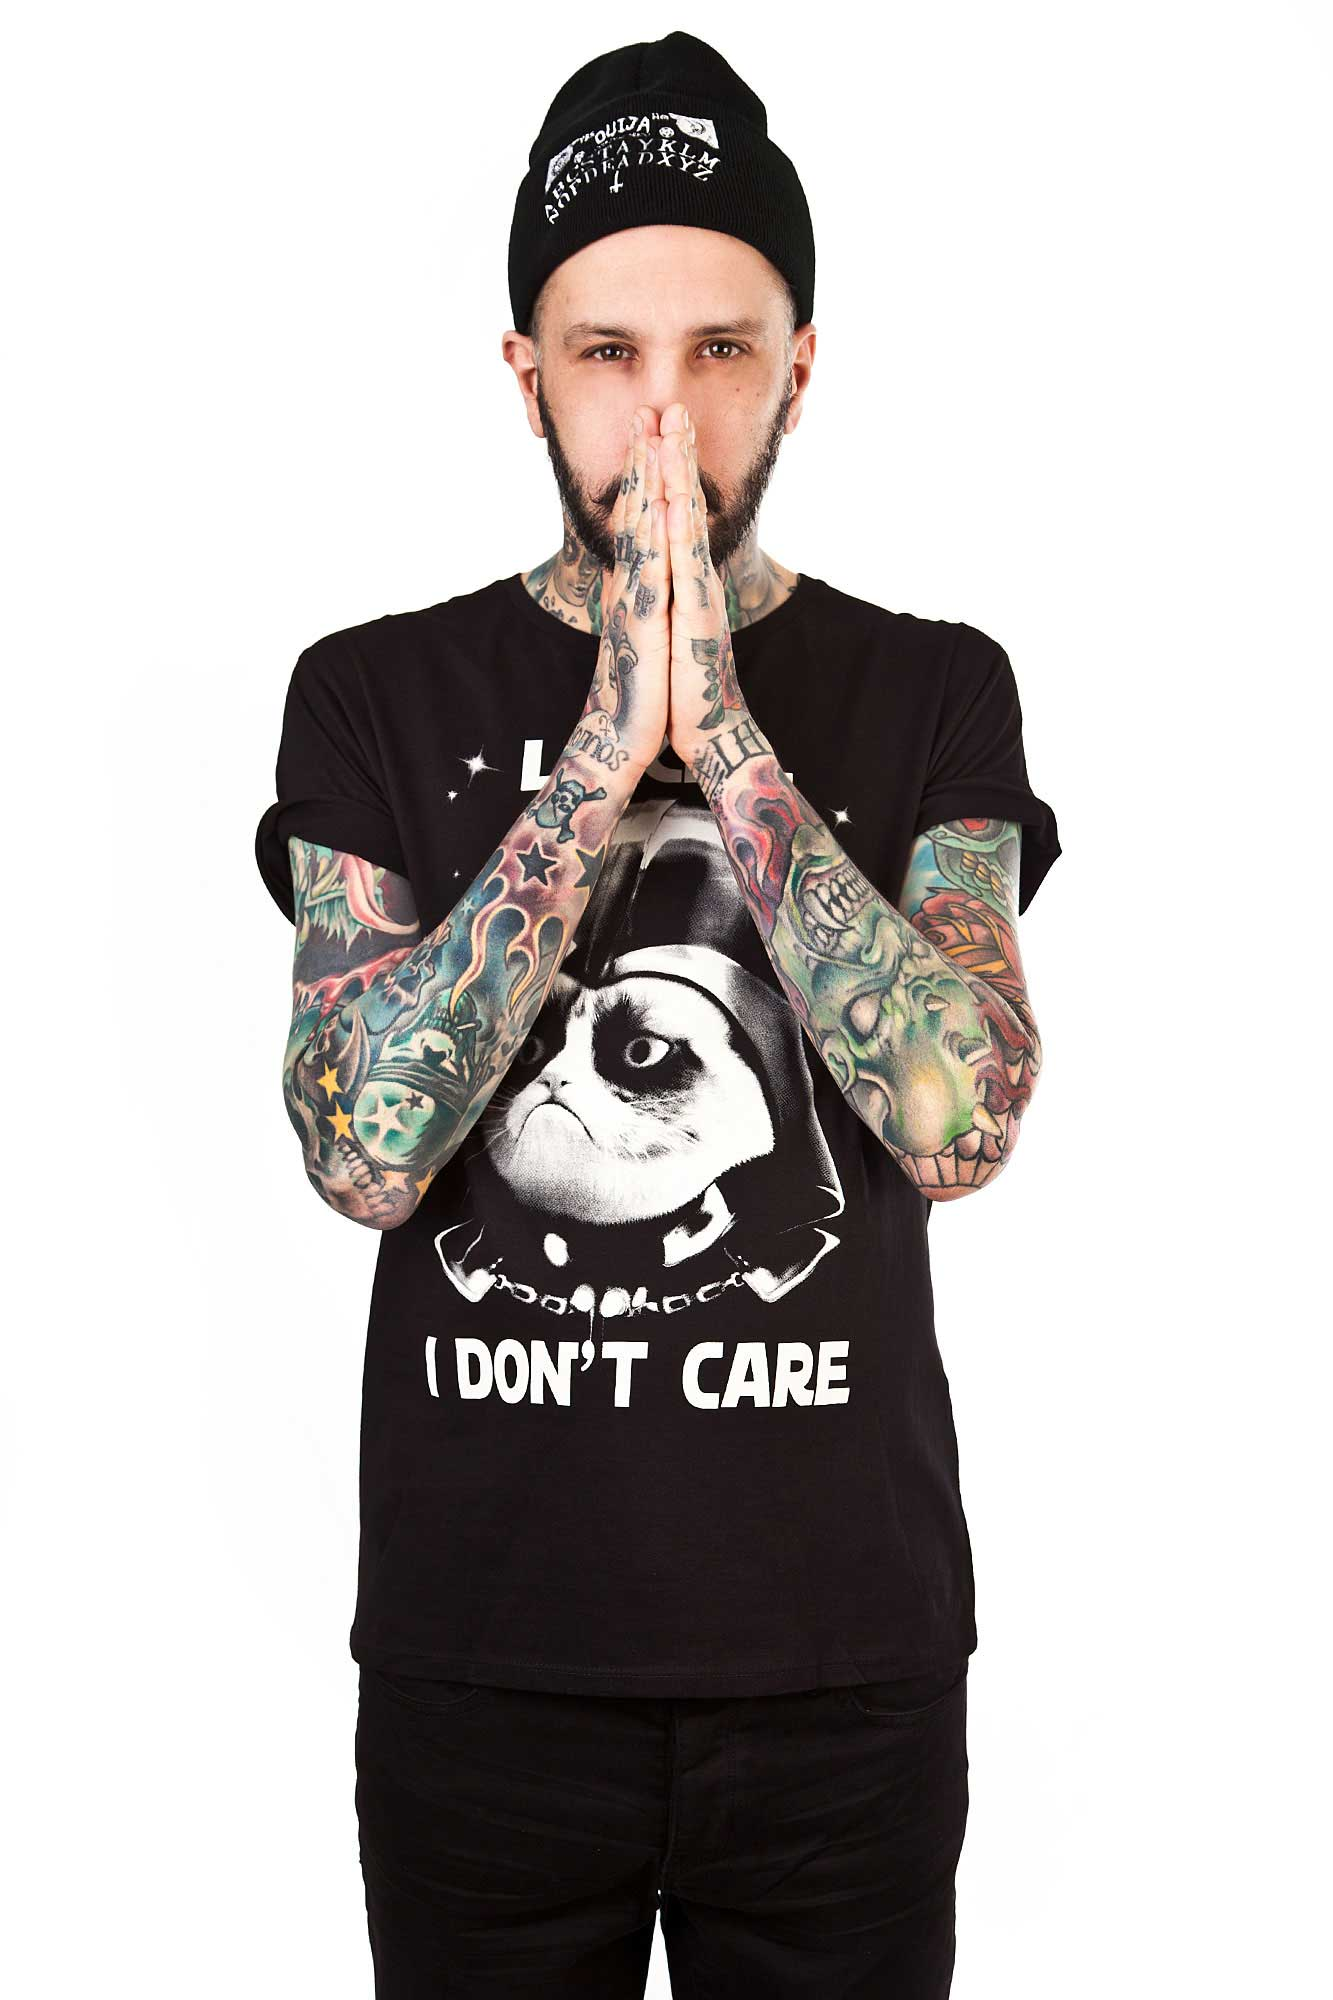 Luke I Don't Care Tee